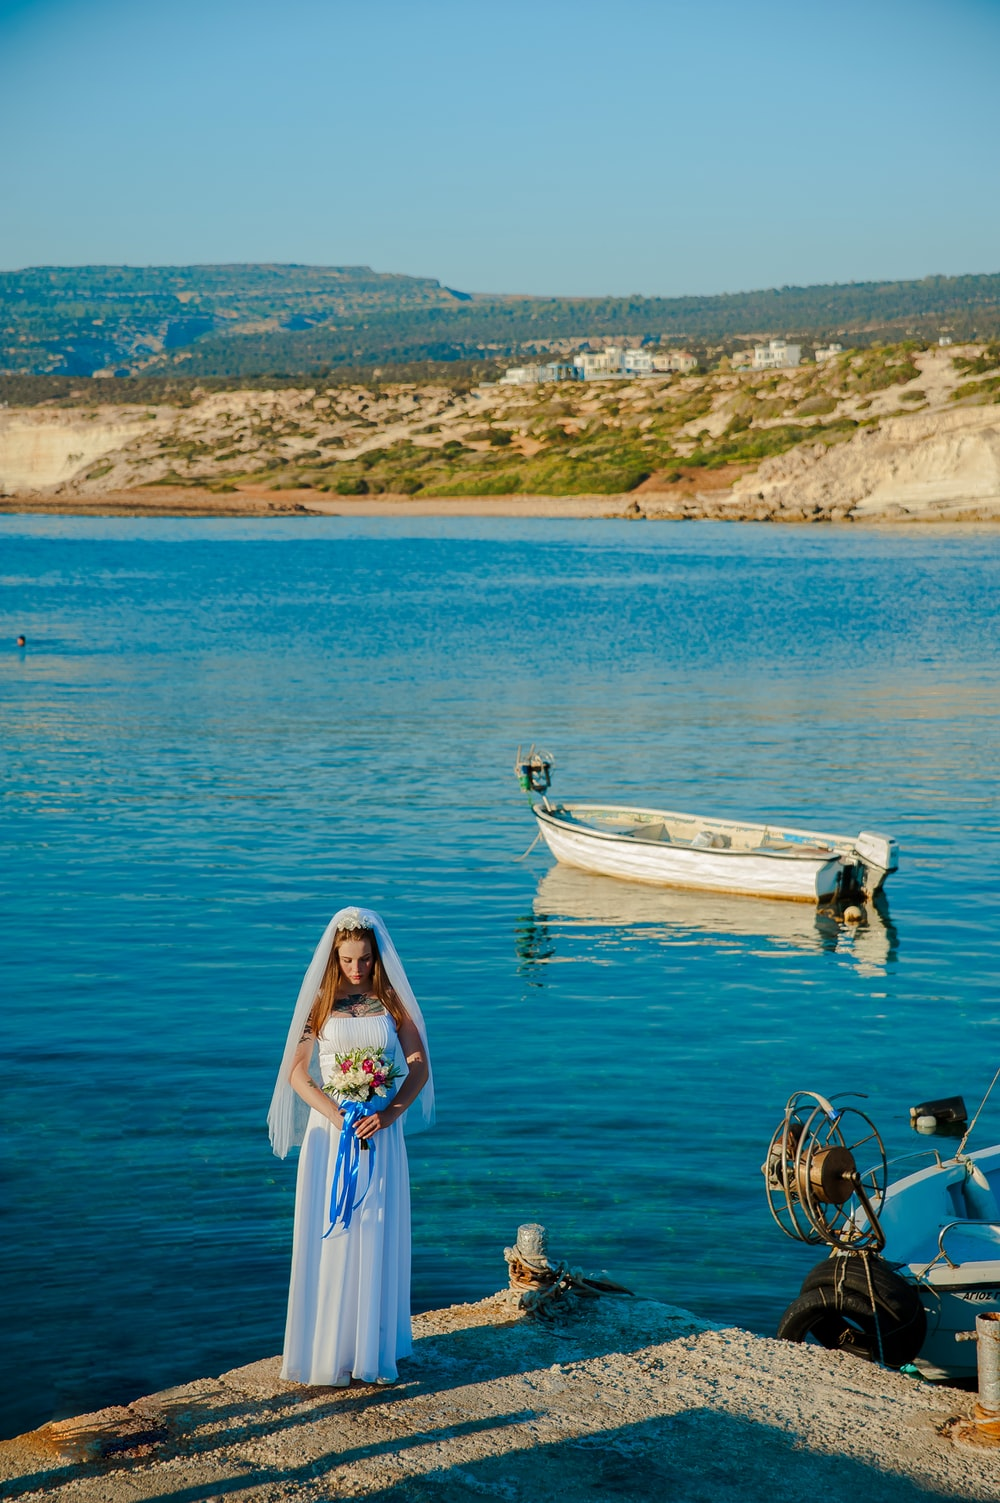 woman wearing white wedding dress standing near body of water holding flower bouquet